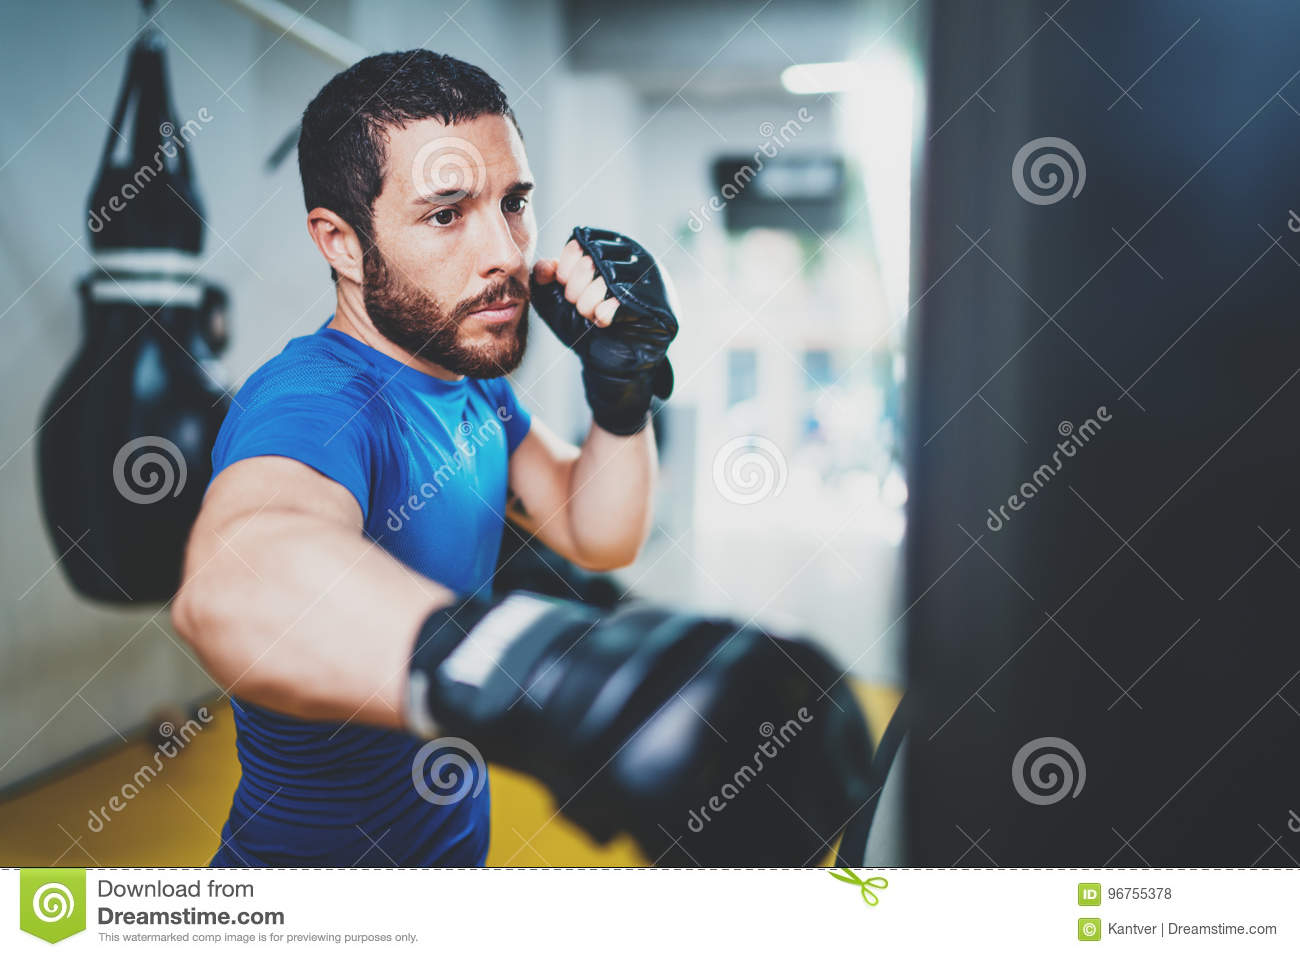 Young muscular kickboxing fighter practicing kicks with punching bag.Kick boxer boxing as exercise for the fight.Boxer